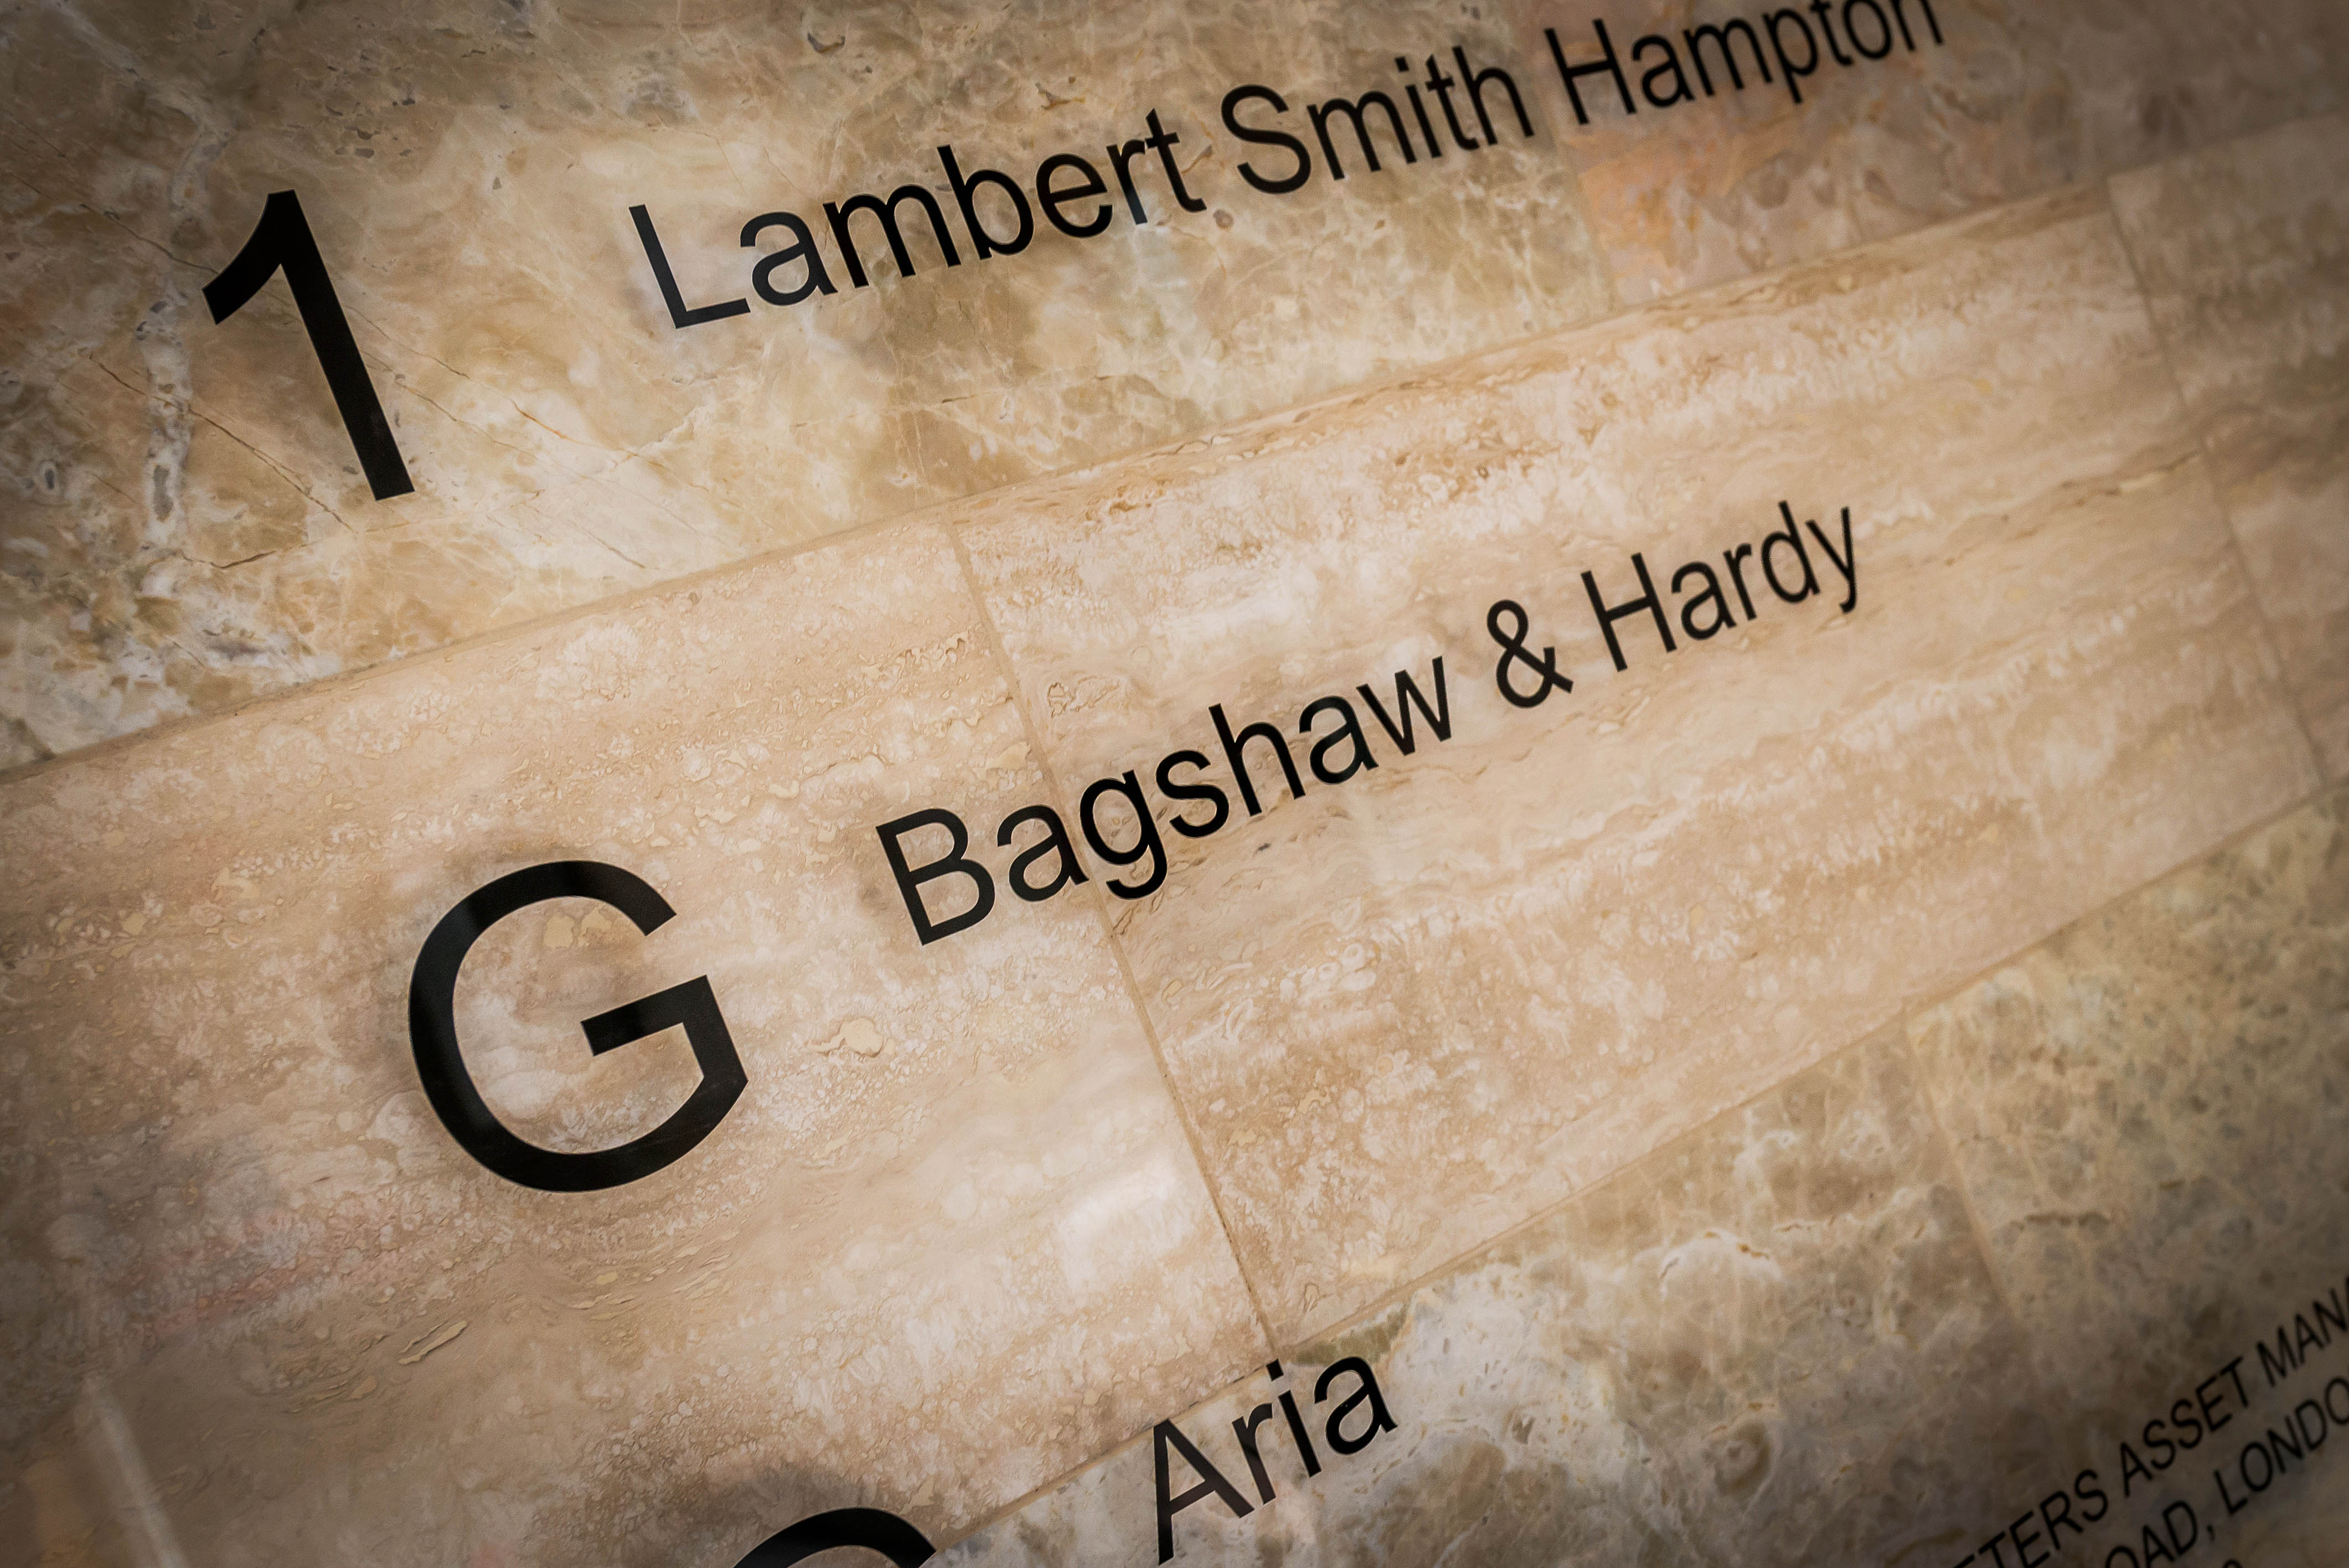 Bagshaw & Hardy open the doors to their new office.